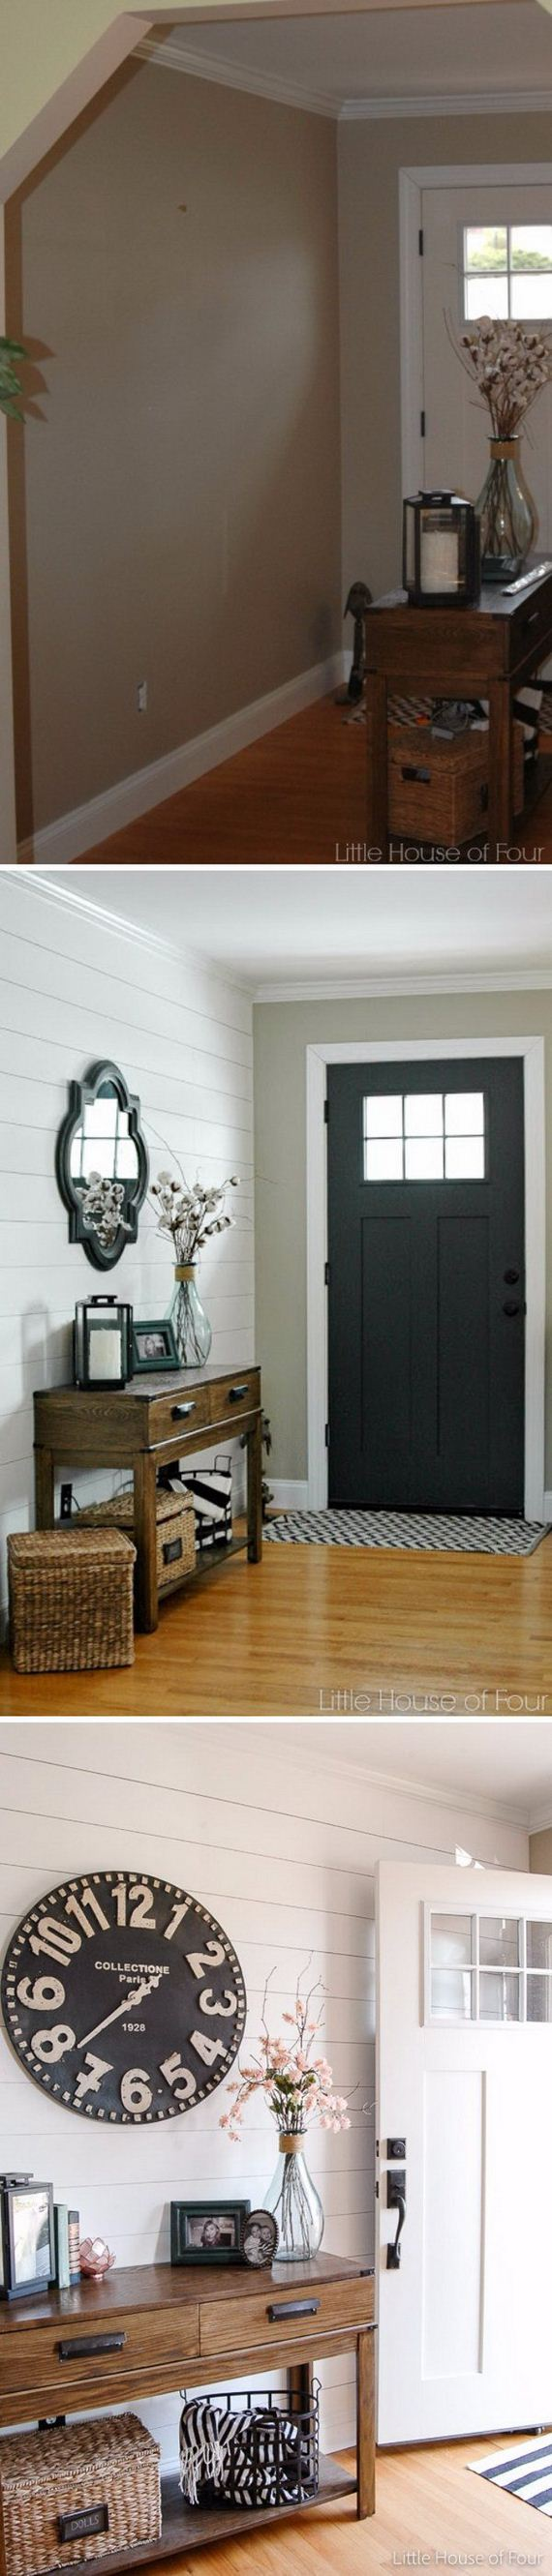 17-amazing-entryway-makeover